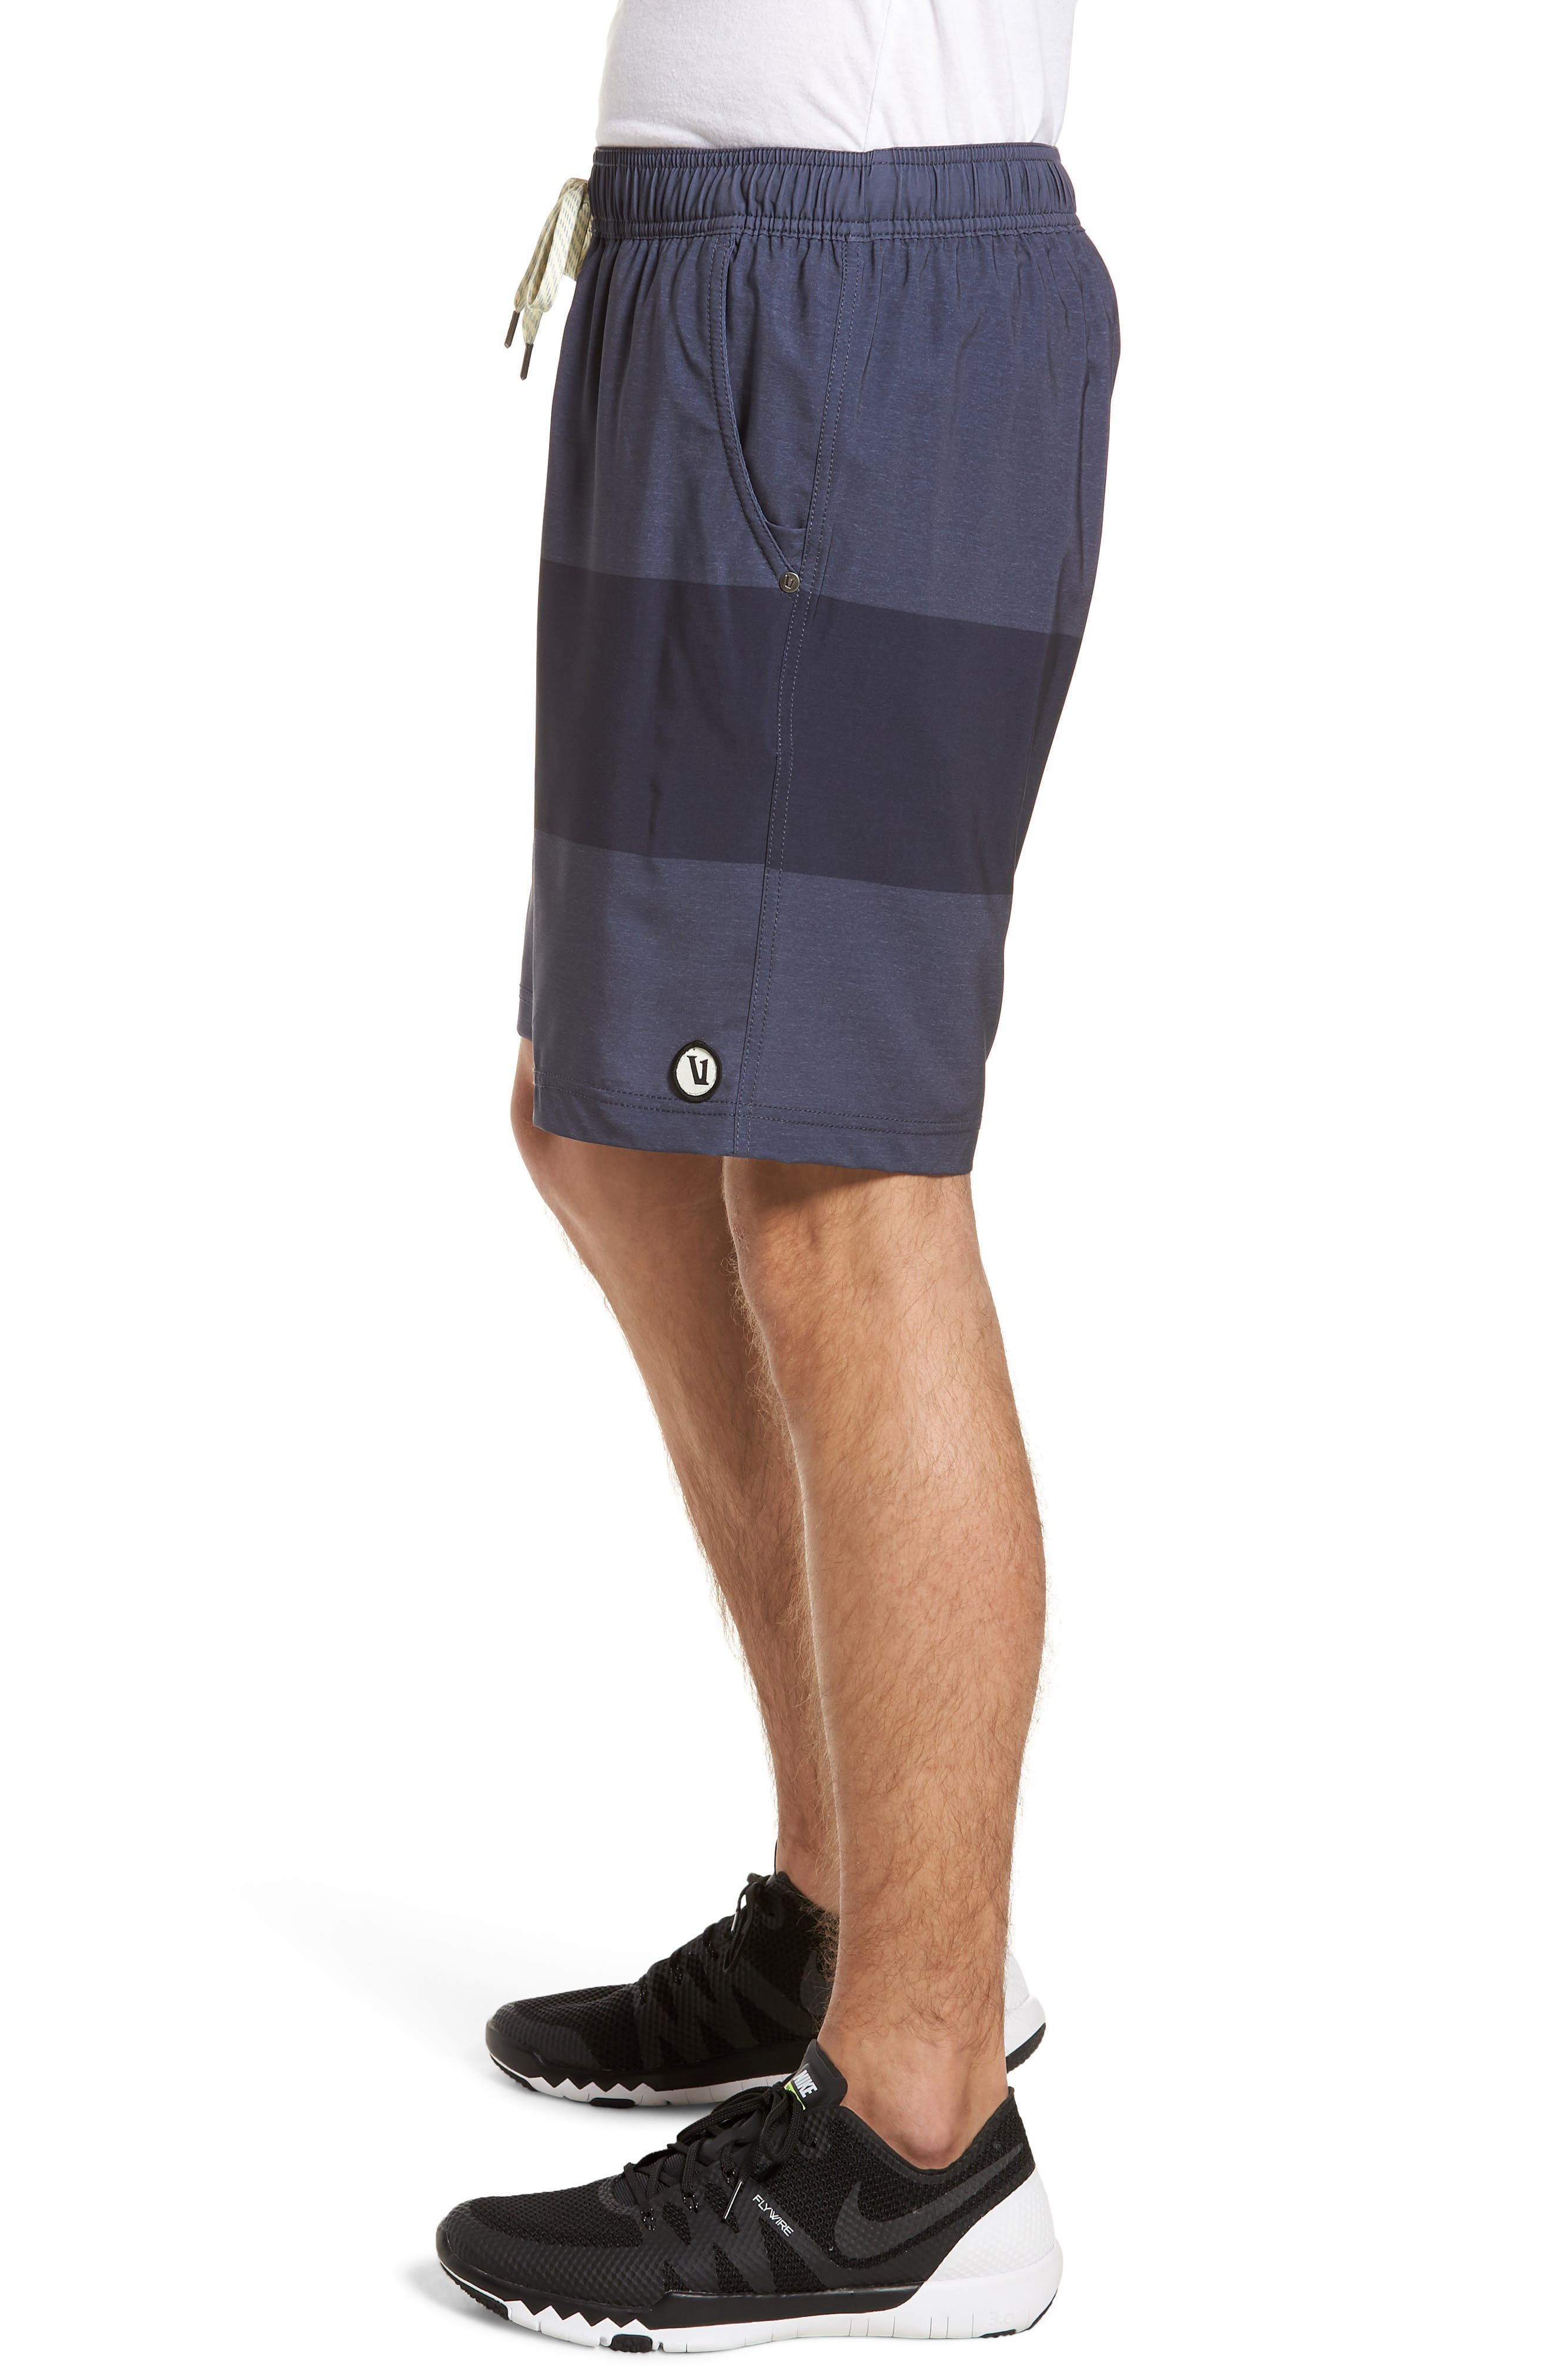 Kore Shorts,                             Alternate thumbnail 3, color,                             Navy Texture Block